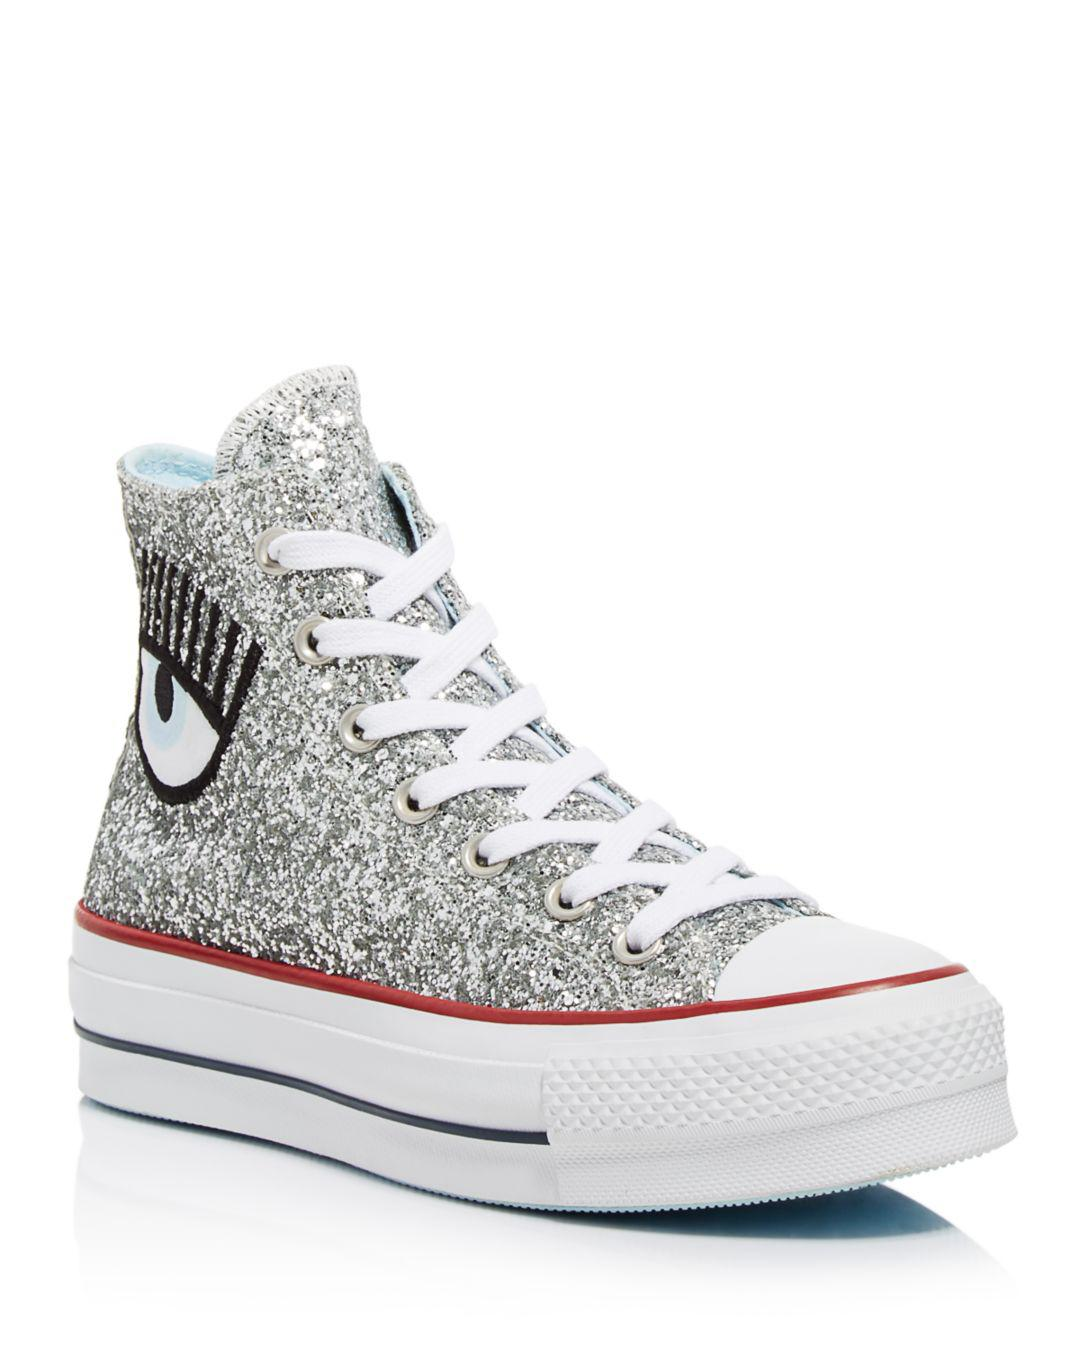 7a4bef16242fa3 Lyst - Converse All Star Lift Hi Trainers in Metallic - Save 10%